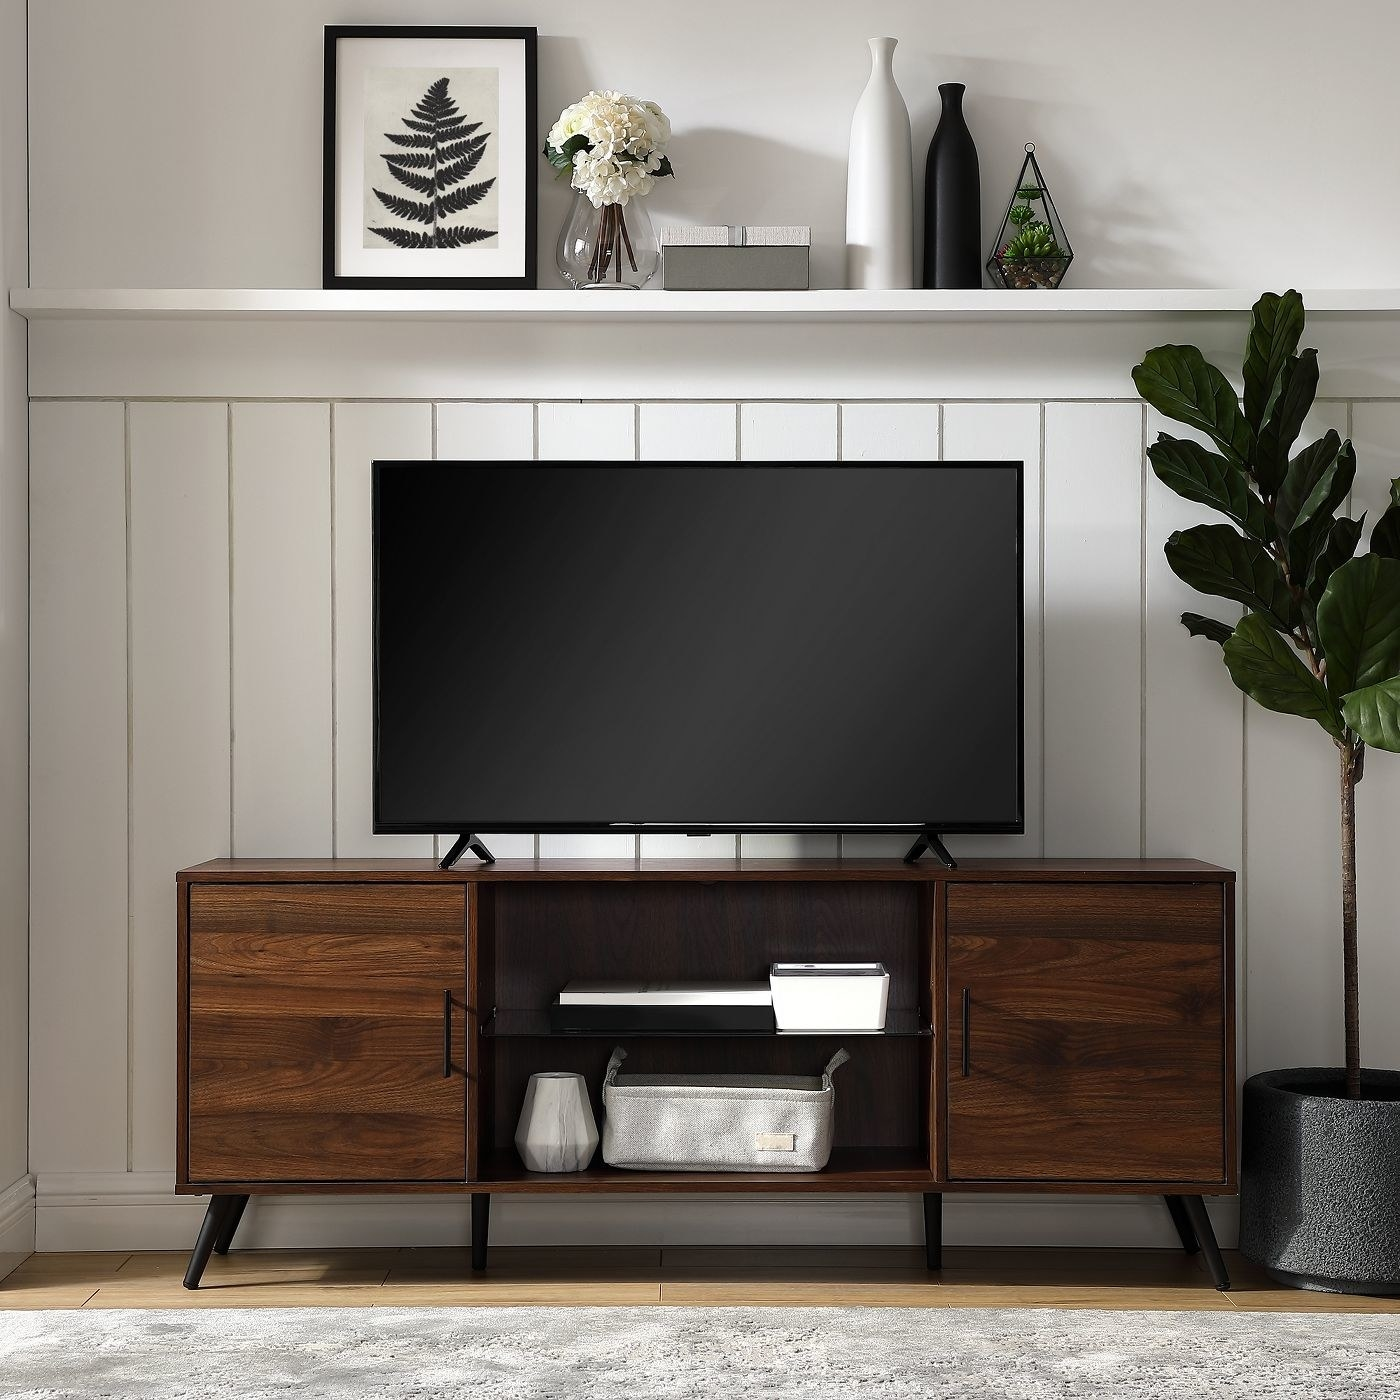 dark walnut wood and glass TV console with shelves and doors and a TV on top